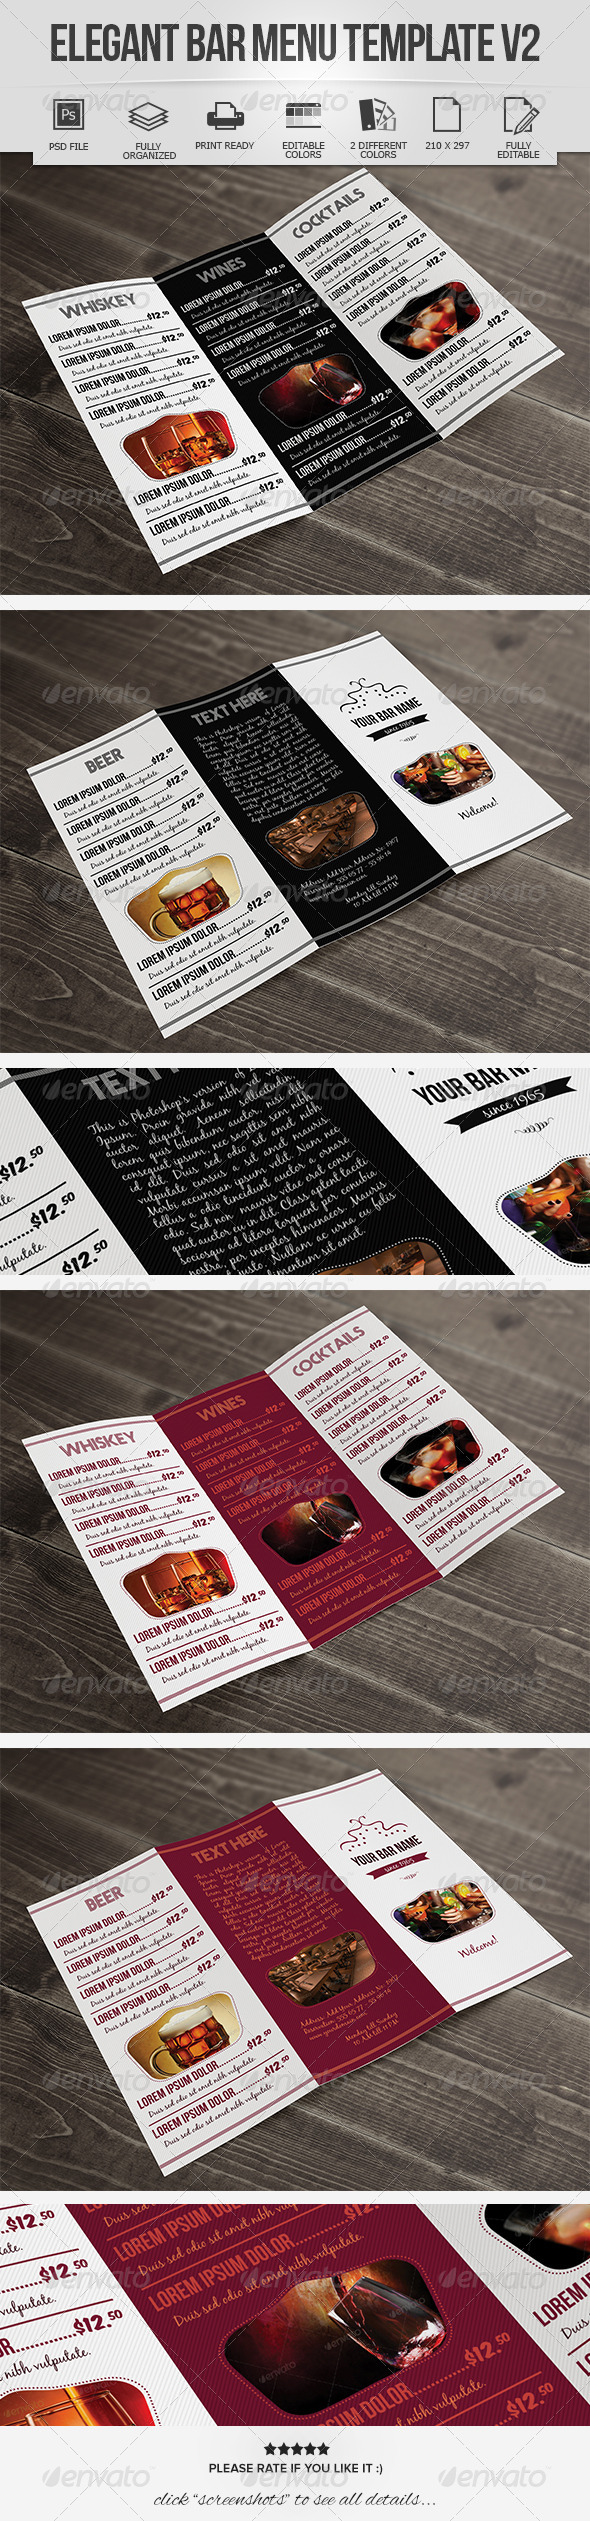 GraphicRiver Elegant Bar Menu Design V2 7223250